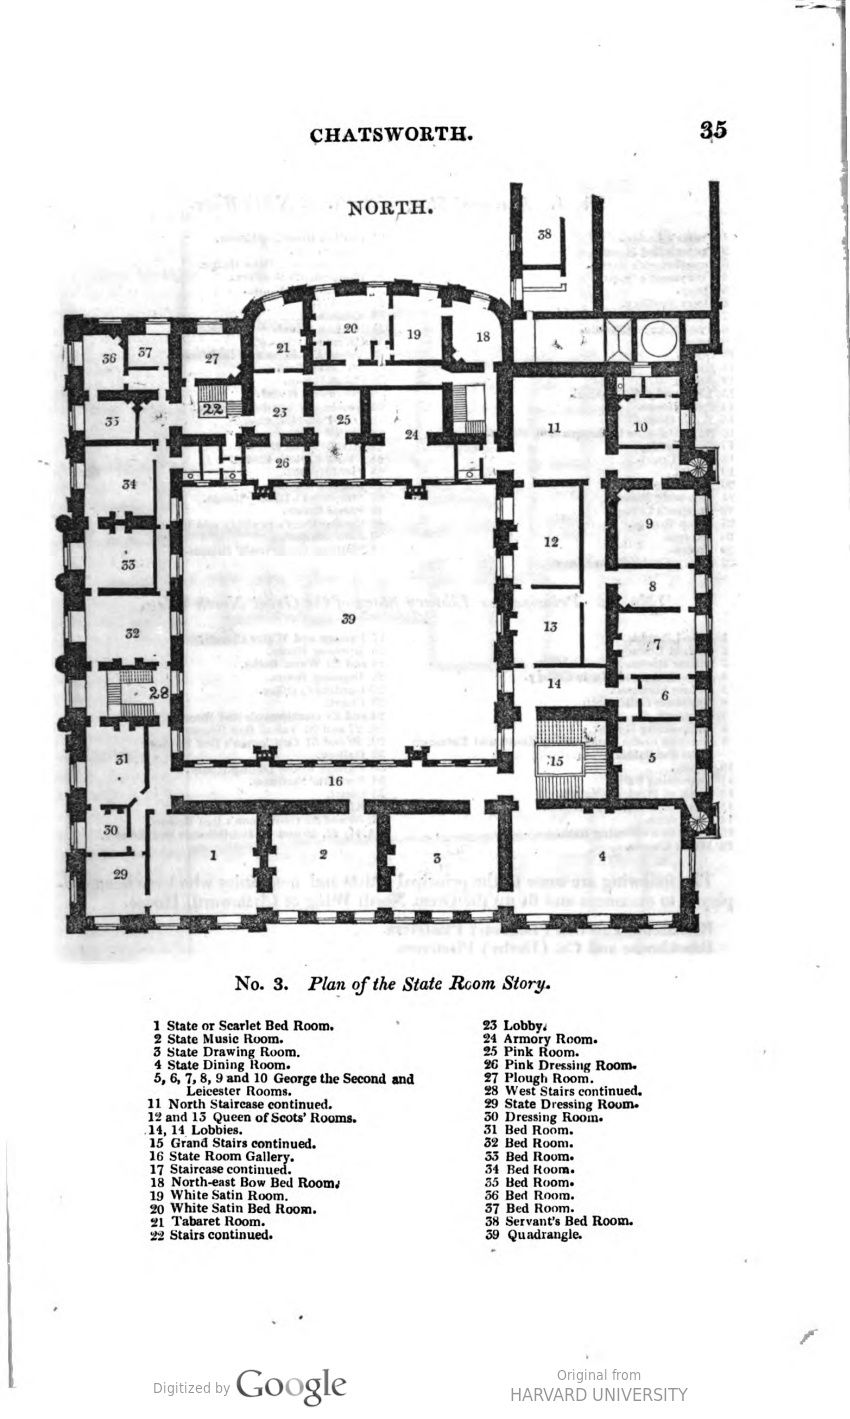 Chatsworth House Floor Plan Stateroom Story 2f House Plans Uk How To Plan Architectural Floor Plans